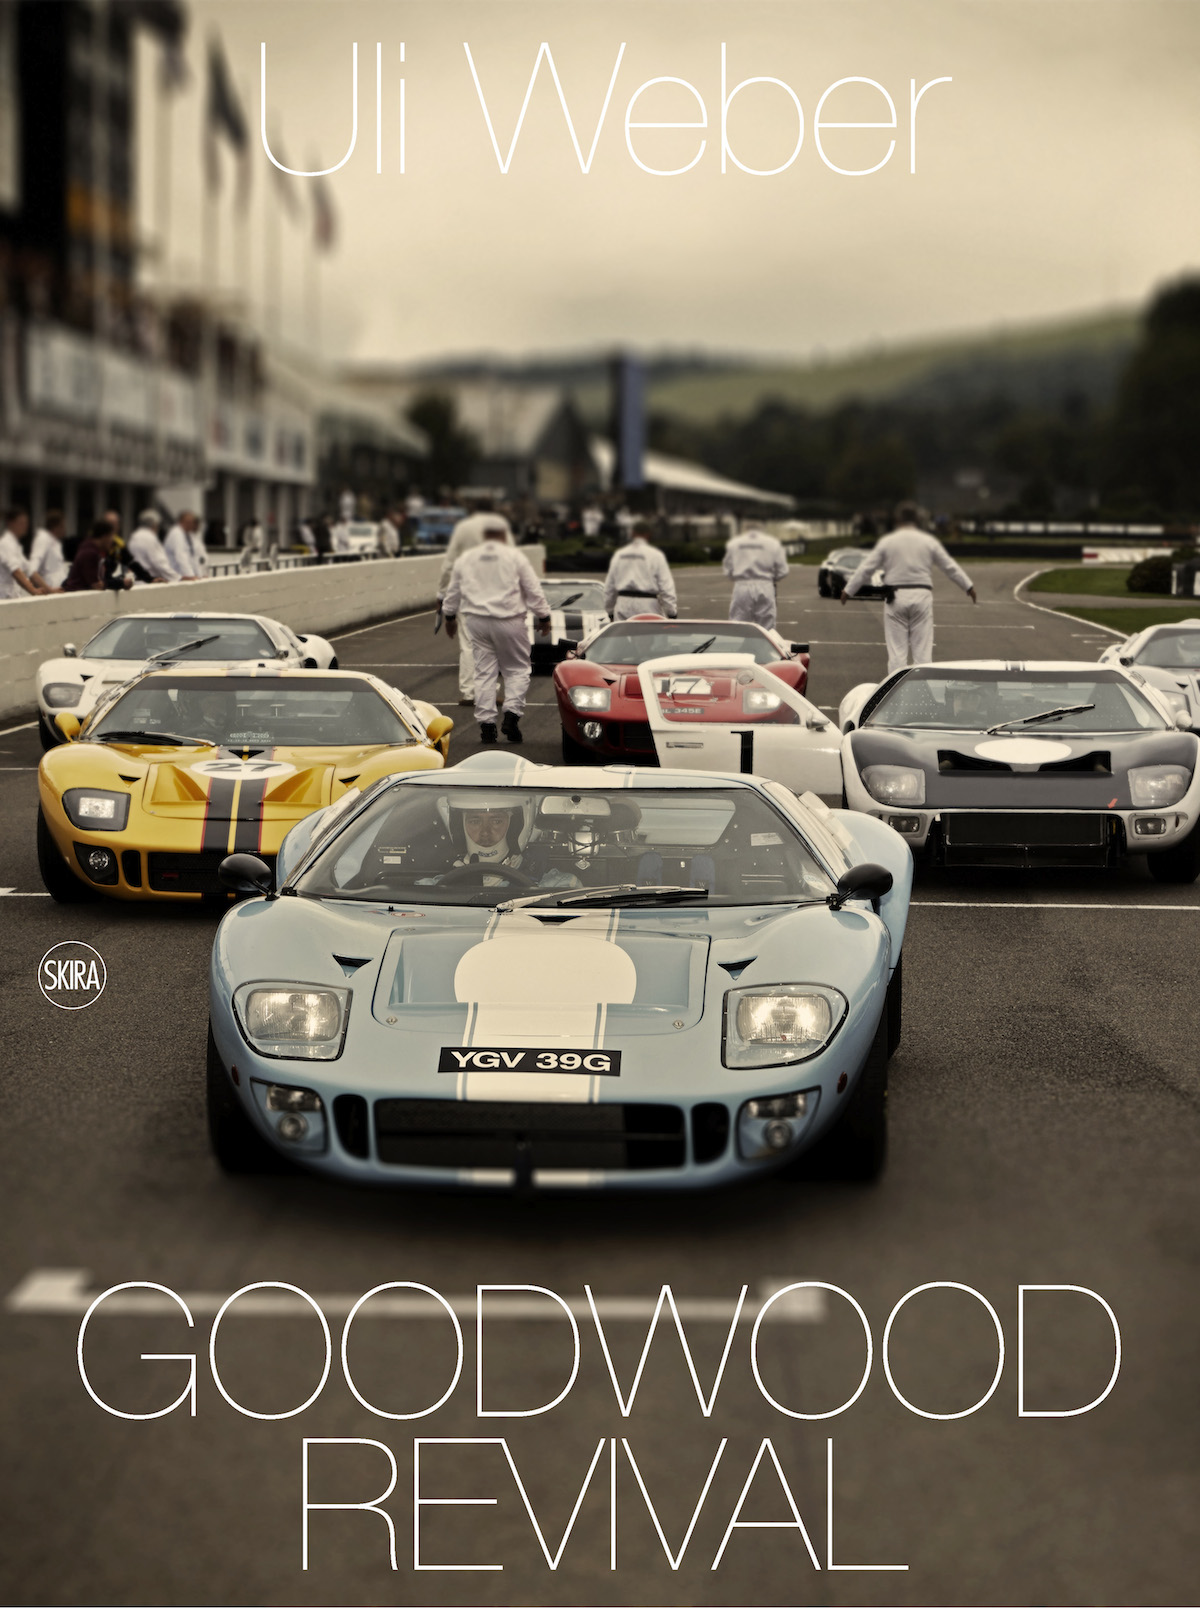 The front cover of Uli Weber's new Goodwood Revival book